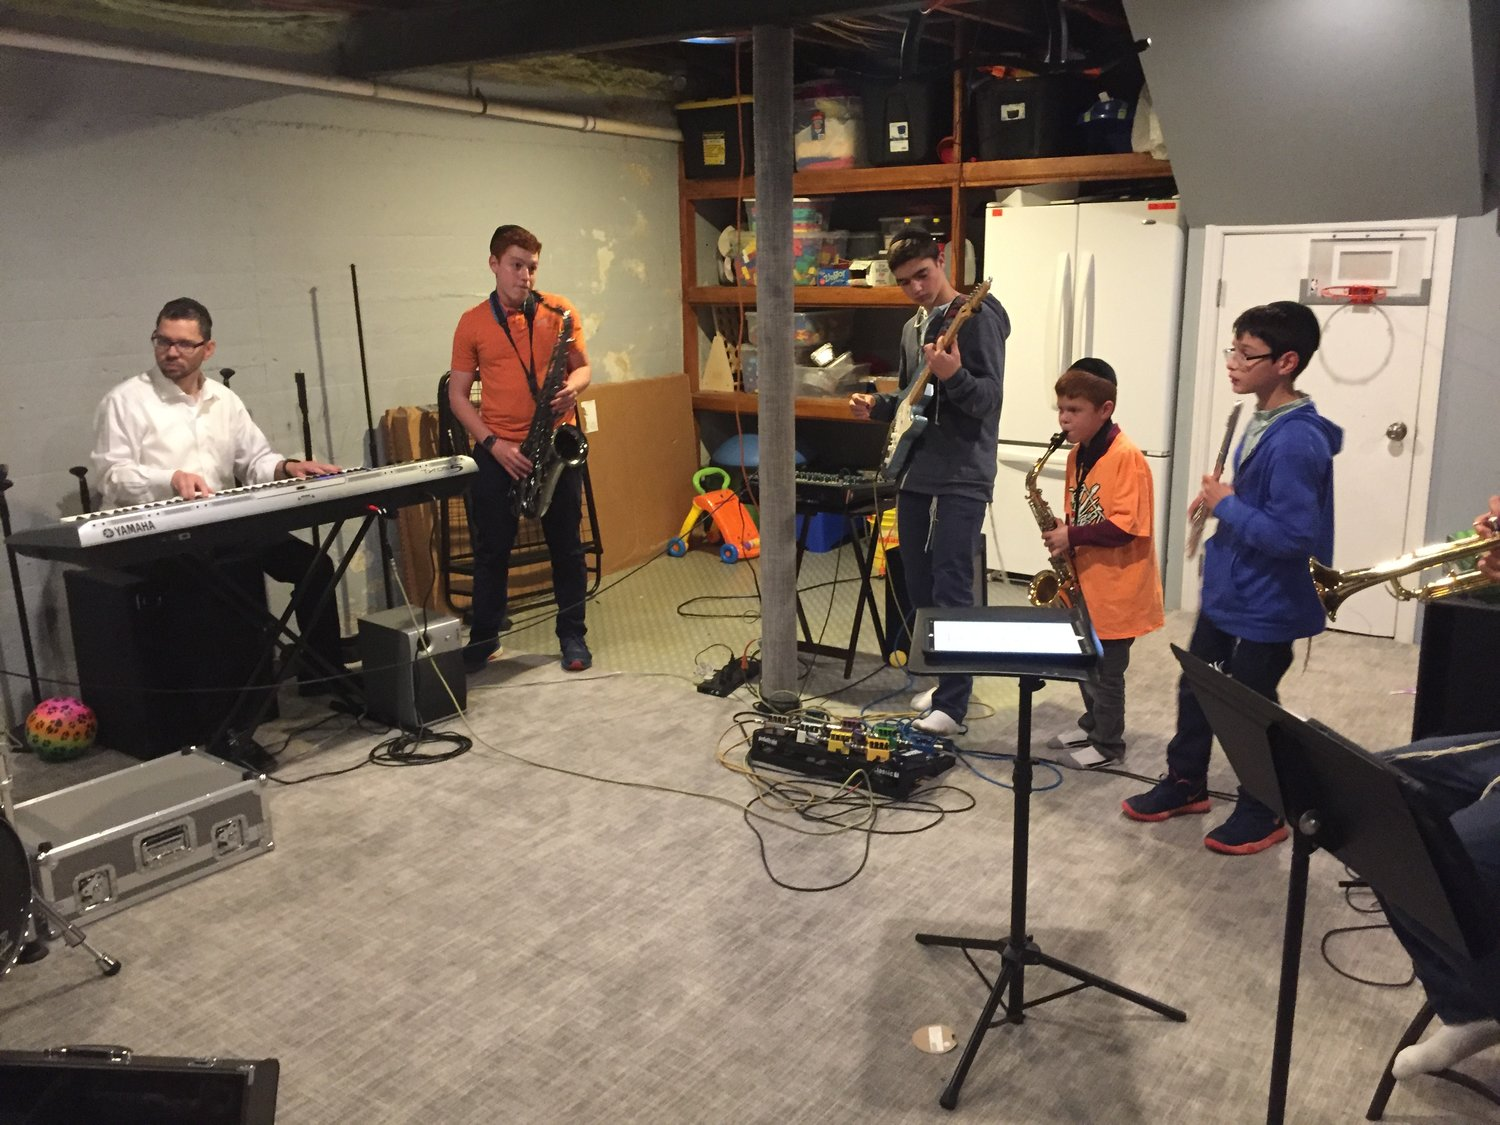 Rock Mishpacha had a quick rehearsal session in when a reporter visited on Oct. 10. From left, Rabbi Aaron Ross, BZ, Avi, Yehuda and Moshe. Not pictured: Mordy, Batsheva, Dovid and Miriam.